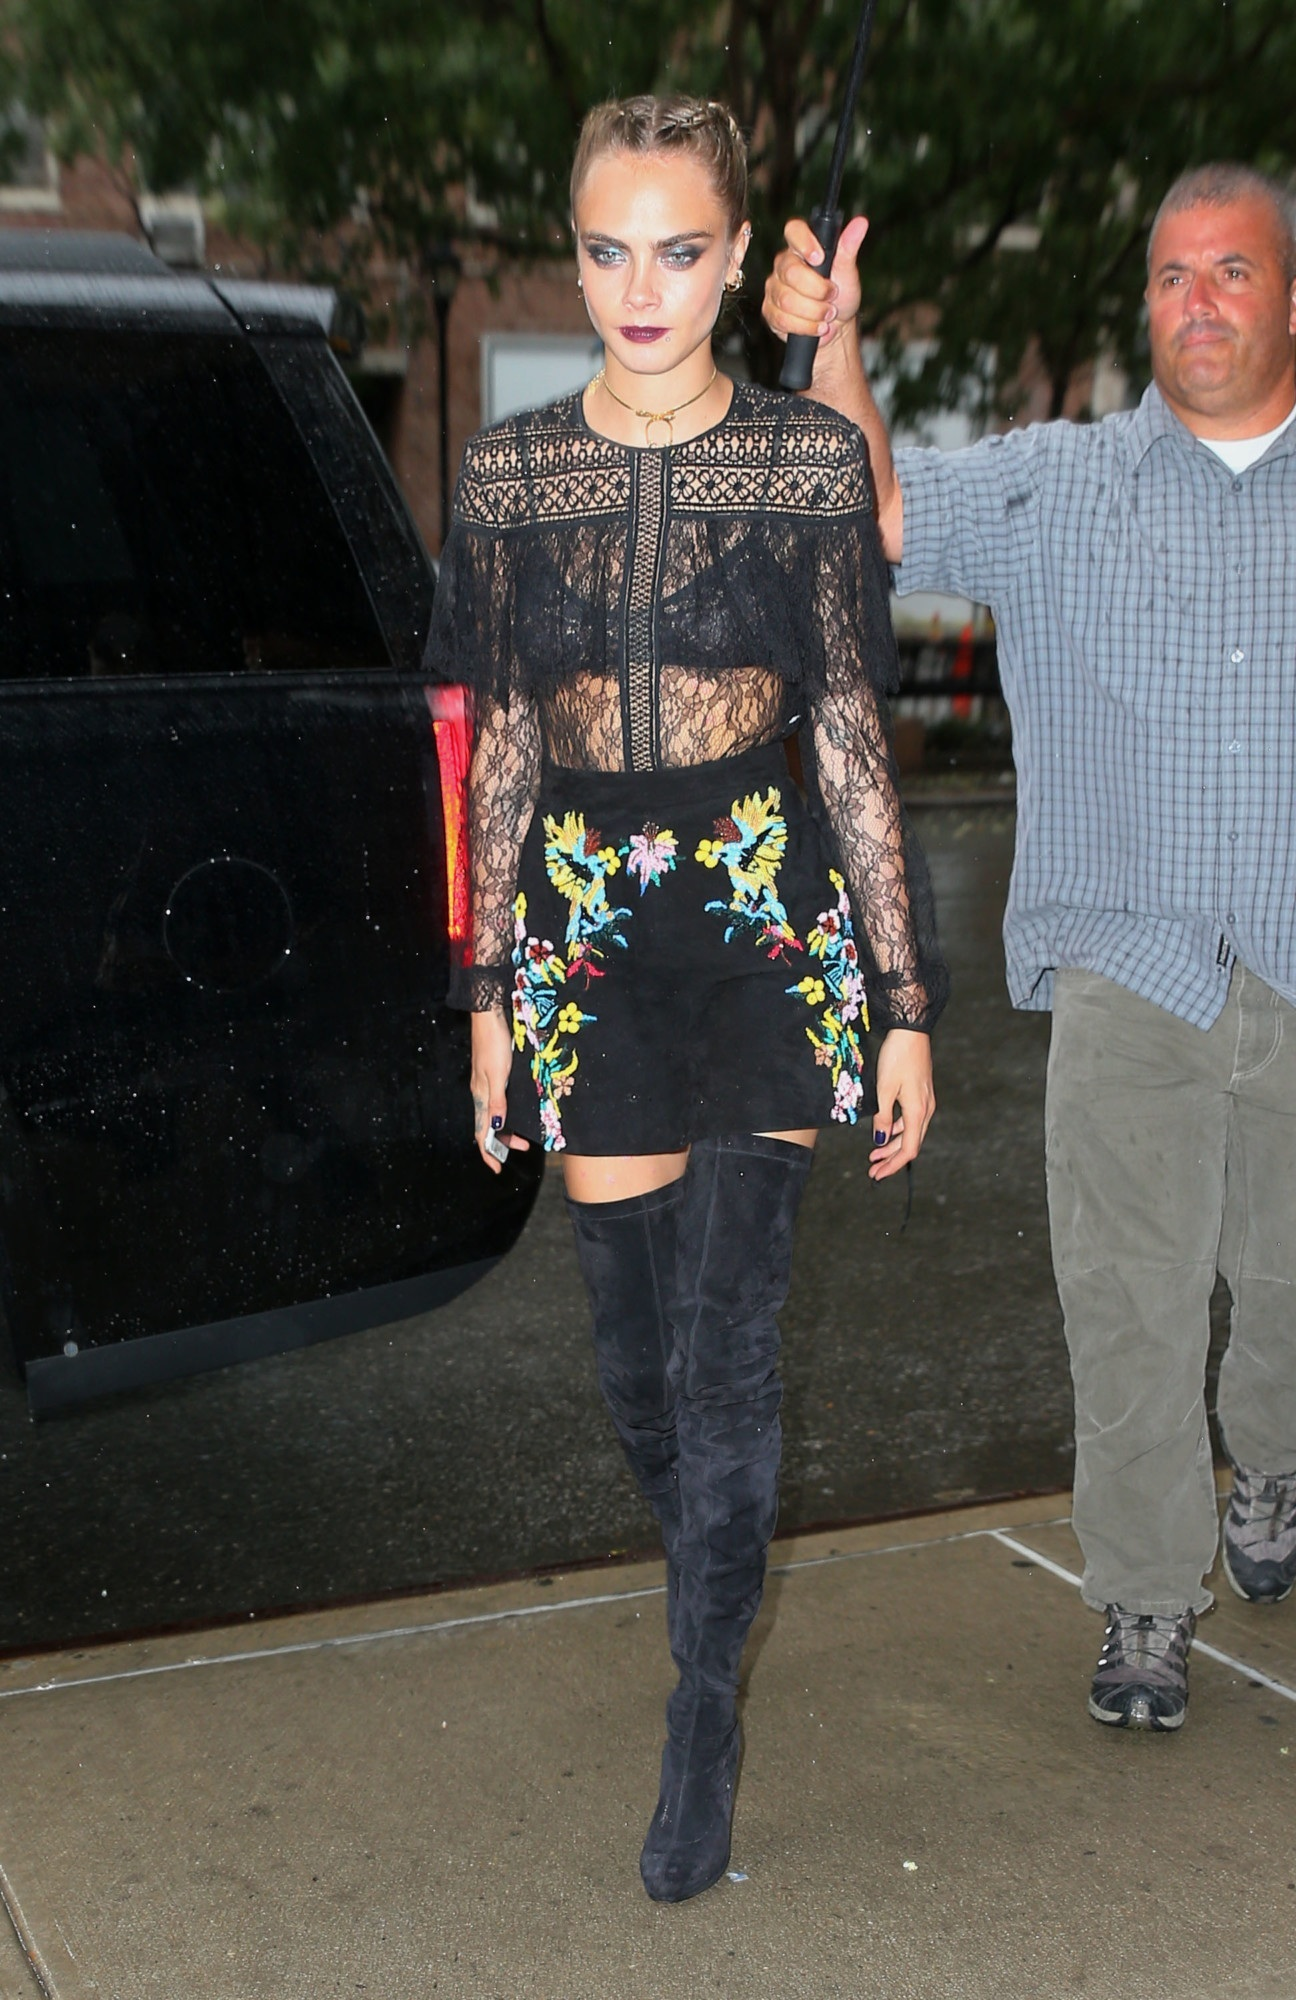 Cara Delevingne New York City New York Zuhair Murad Resort Lace Long Sleeve Top Embroidered Floral Skirt Cara Delevingne